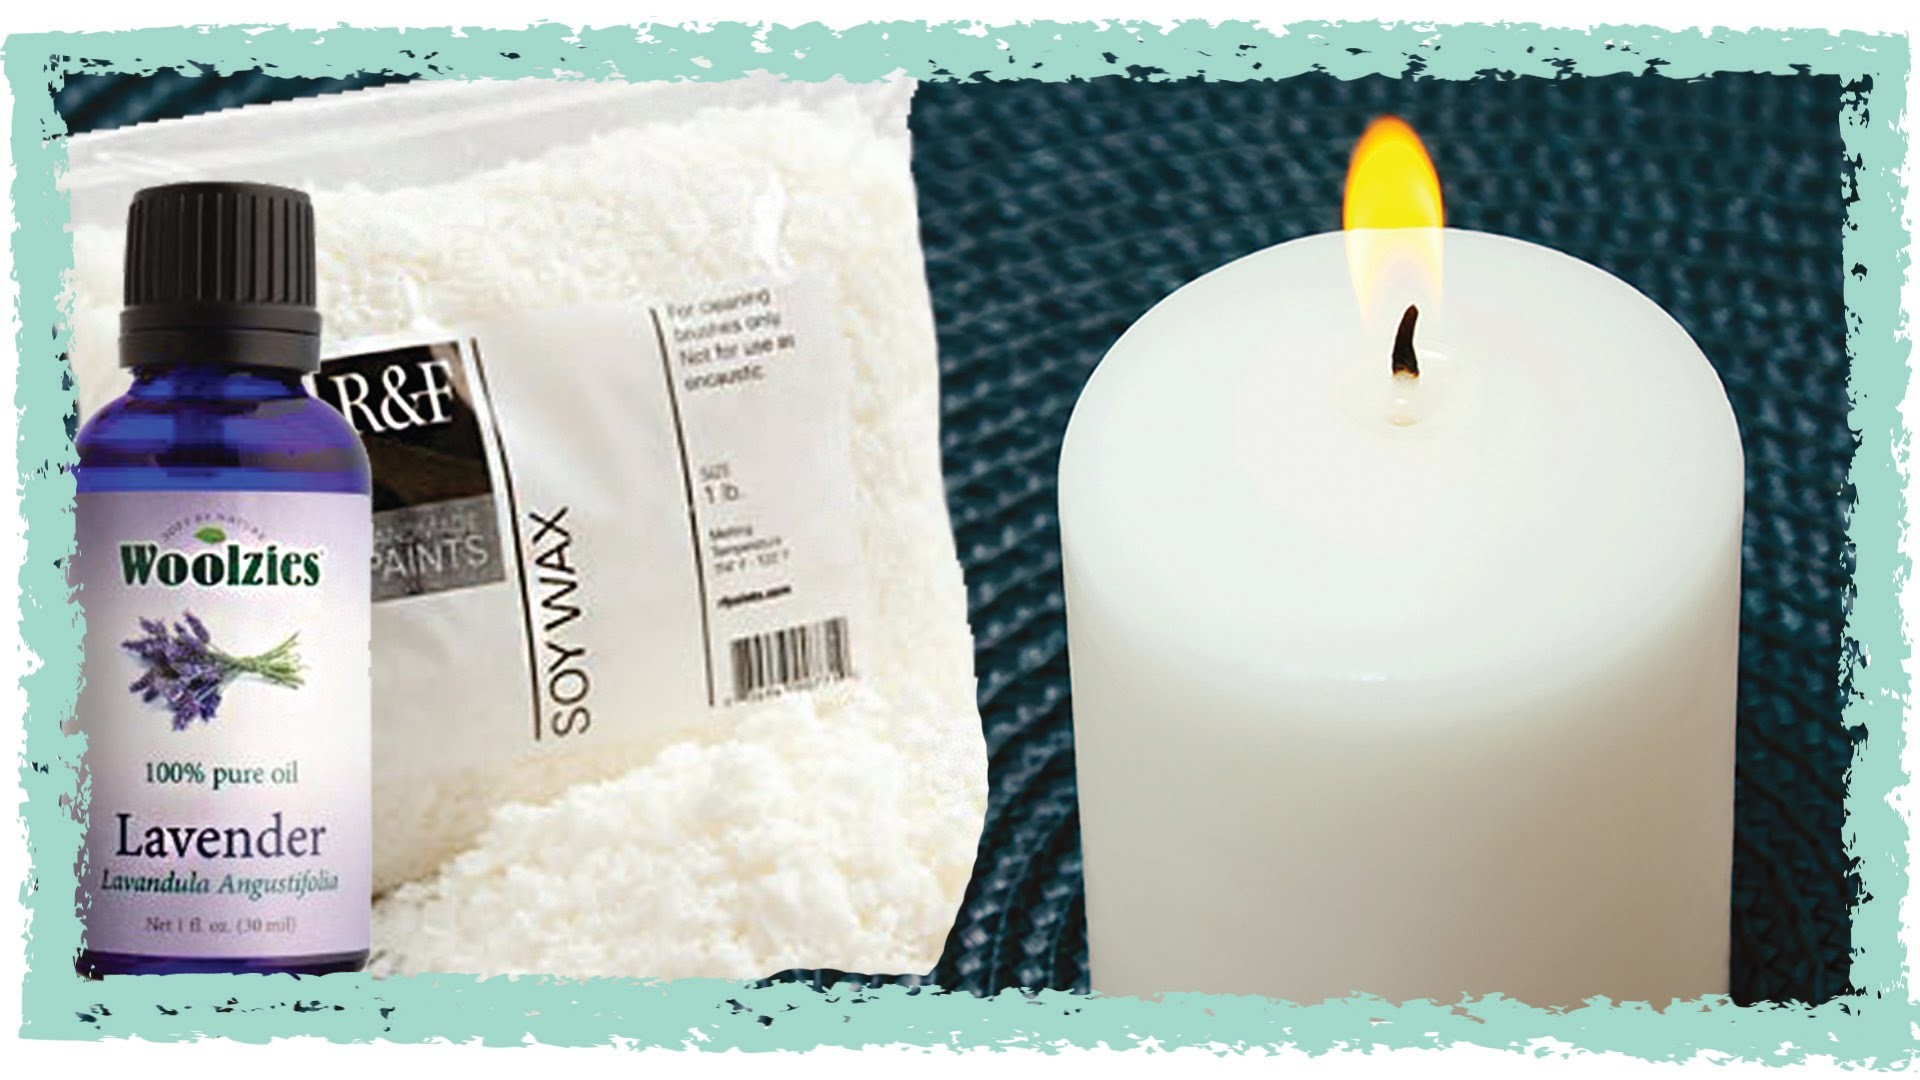 How To Make Your Own Candle - An Easy DIY Gift